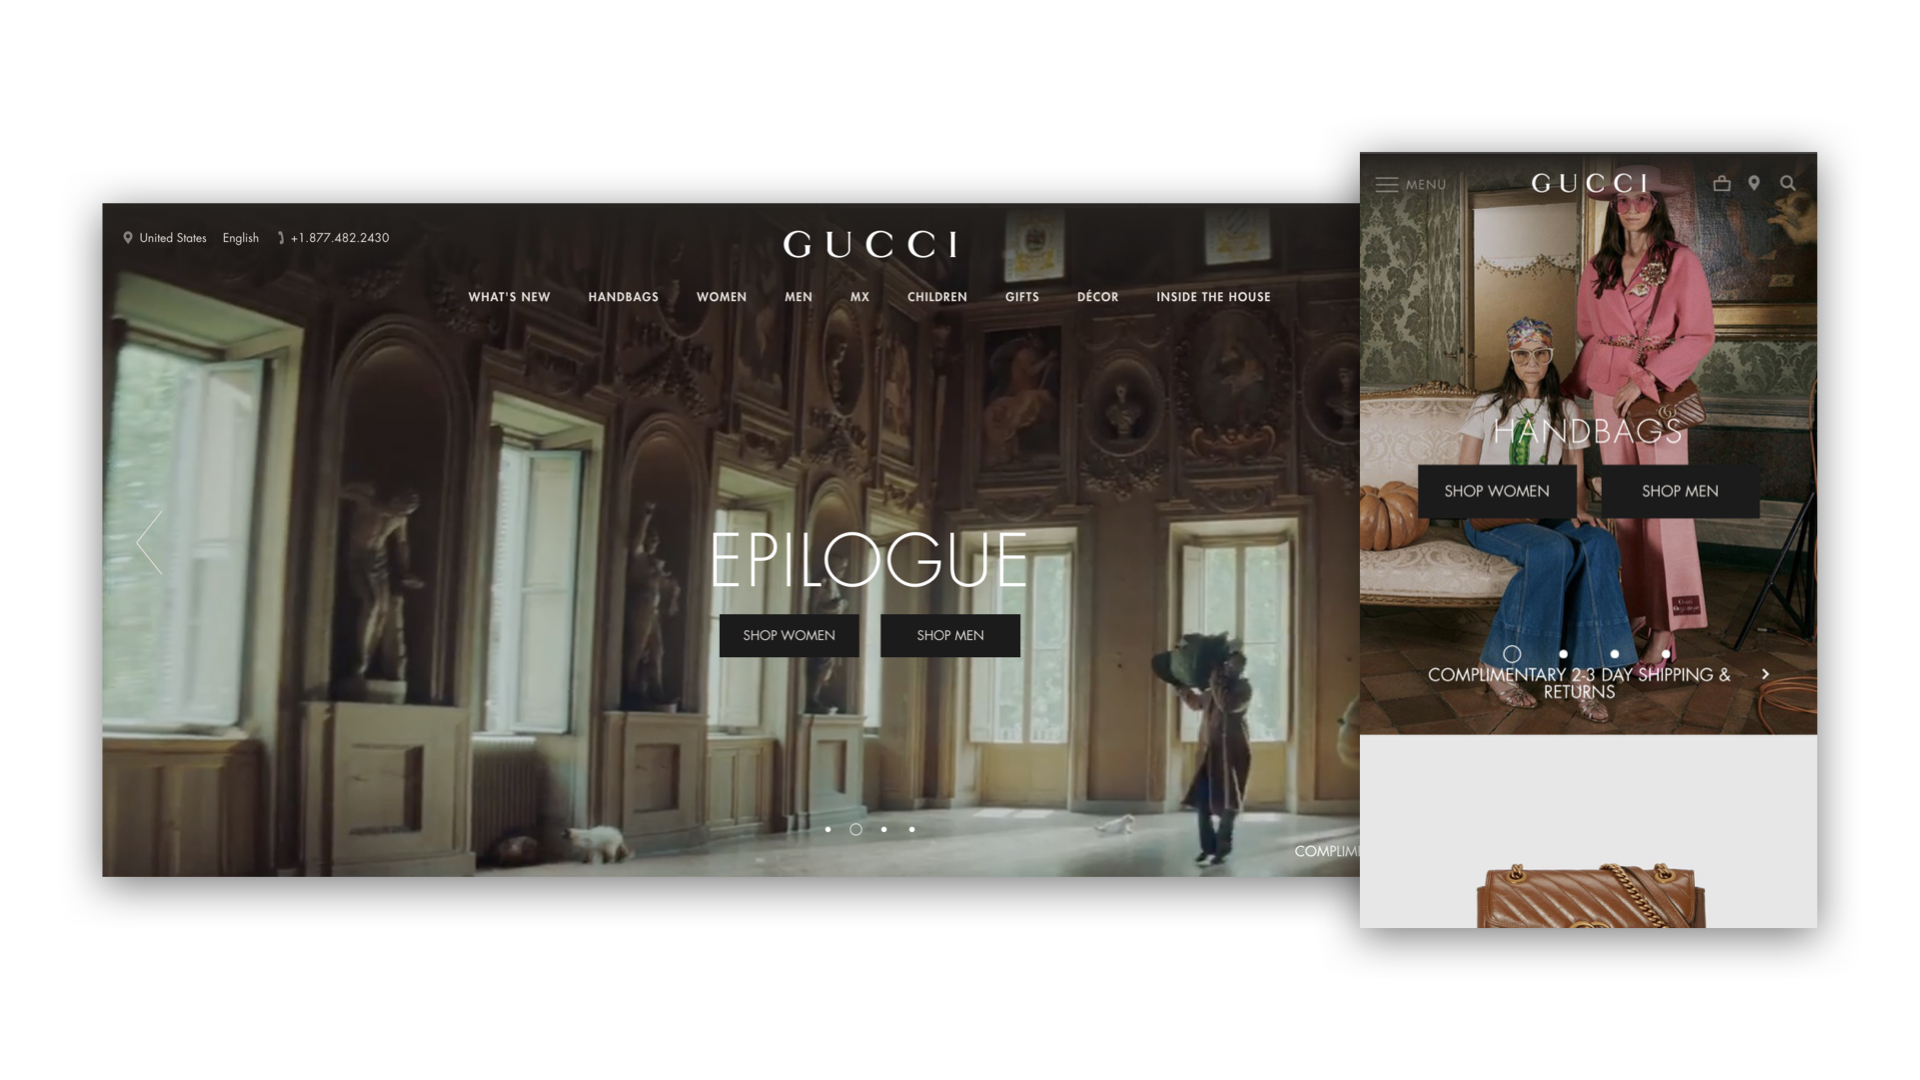 G & Co. is a luxury marketing agency and luxury digital agency: Gucci is one of the most notable luxury names to embrace a digital strategy. Shown: Gucci's eCommerce site on desktop and mobile.